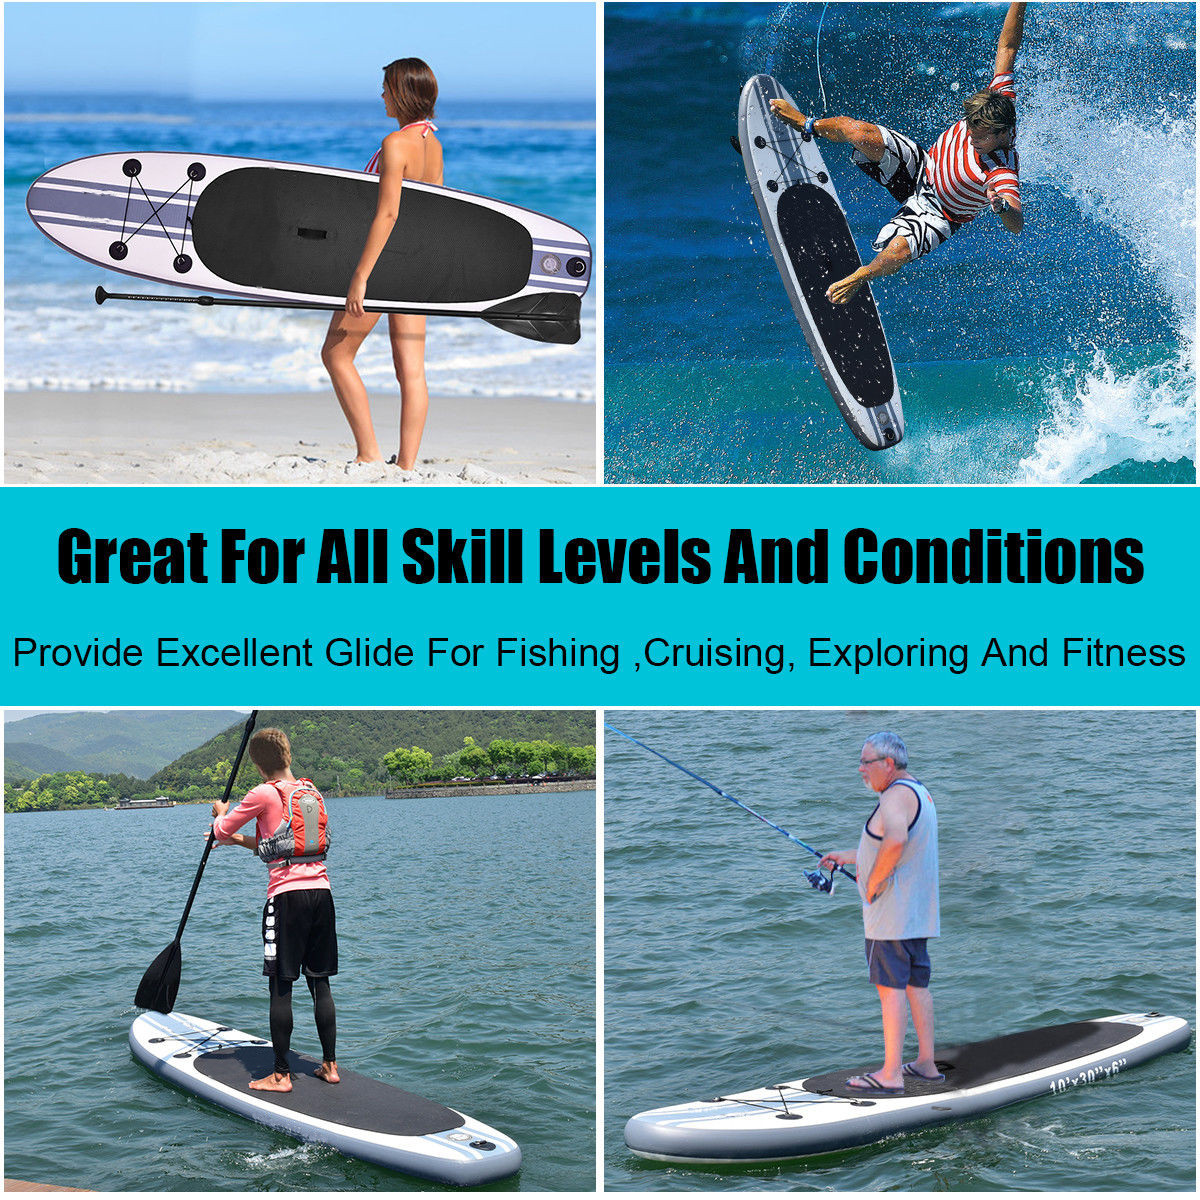 320x78x15cm Inflatable Stand Up Surfboard Surfing Board Water Sport Sup Board With Paddle Pump Foot Safety Rope Tool Kit Professional Design Water Sports Surfing